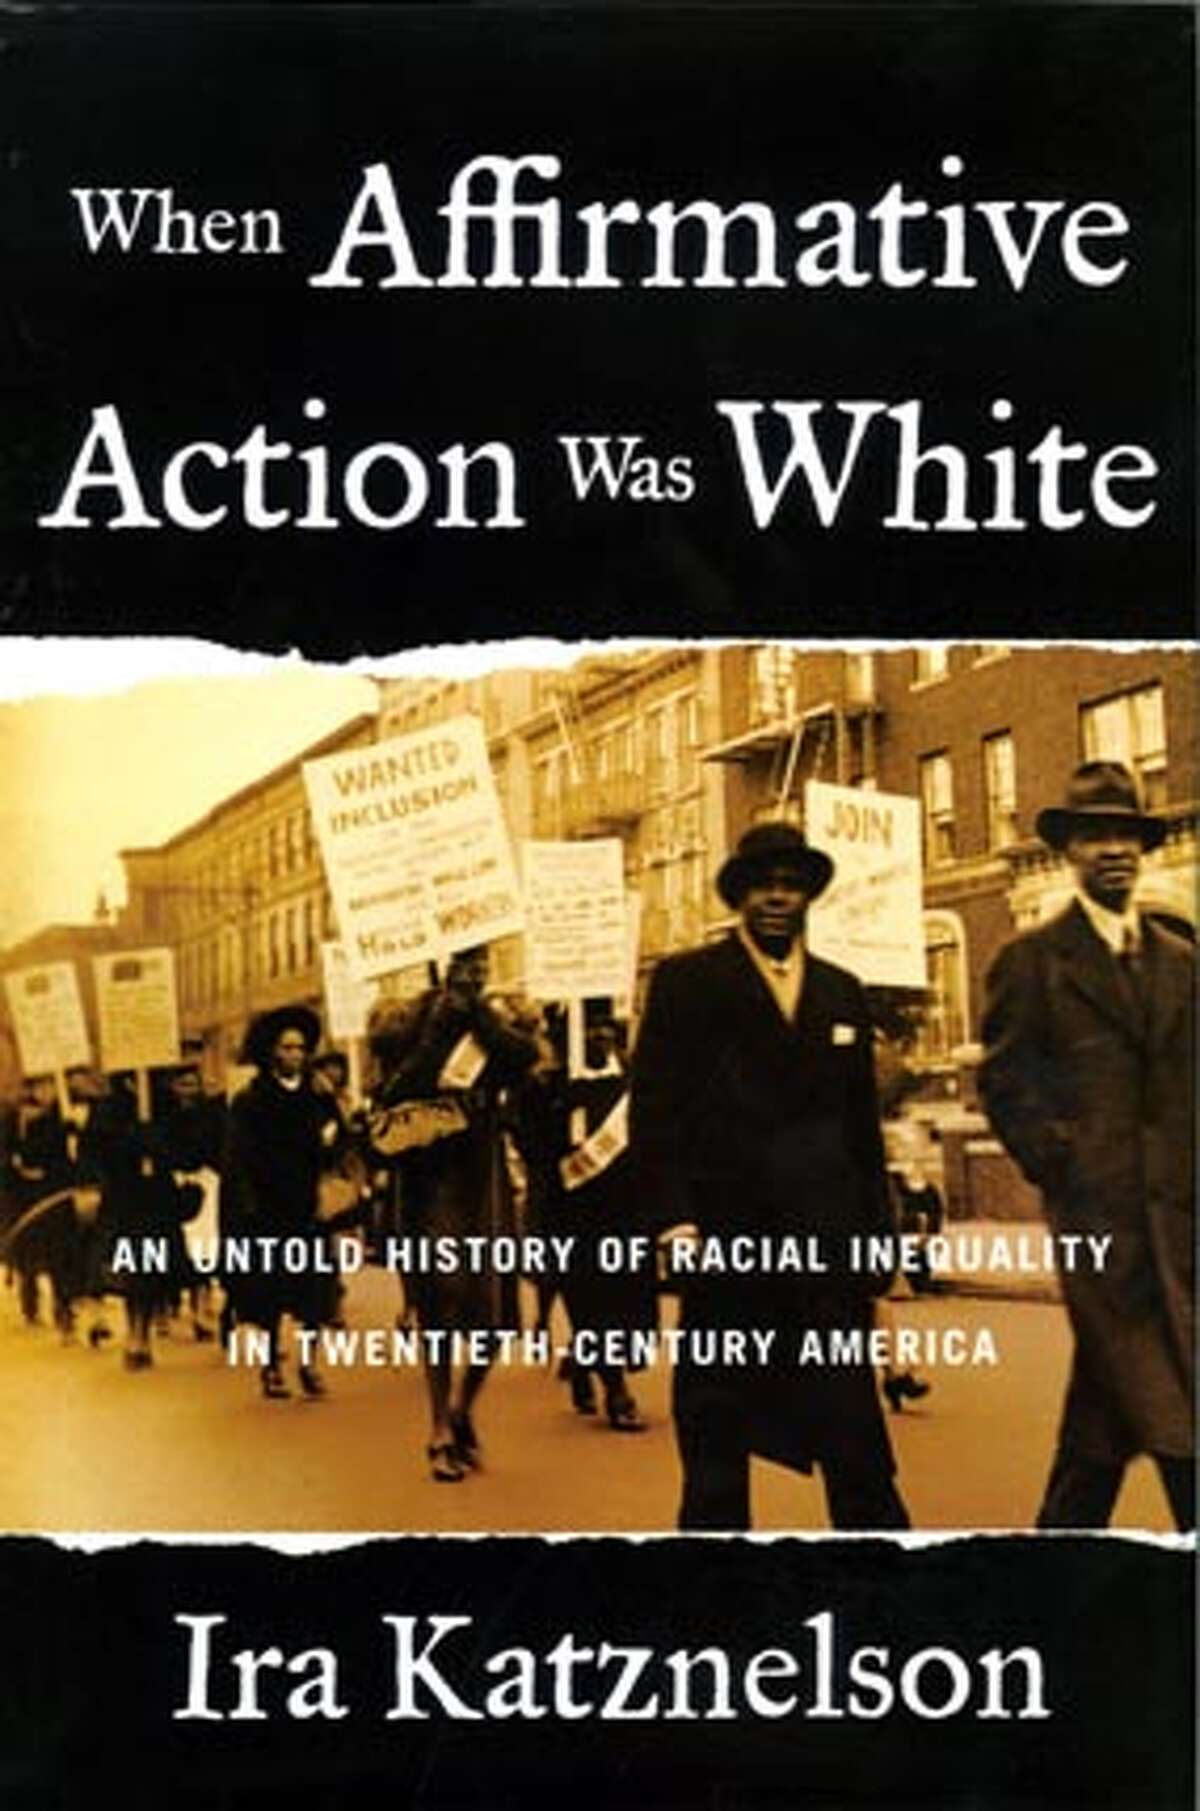 """""""When Affirmative Action Was White: An Untold History of Racial Inequality in Twentieth-Century America"""" by Ira Katznelson"""